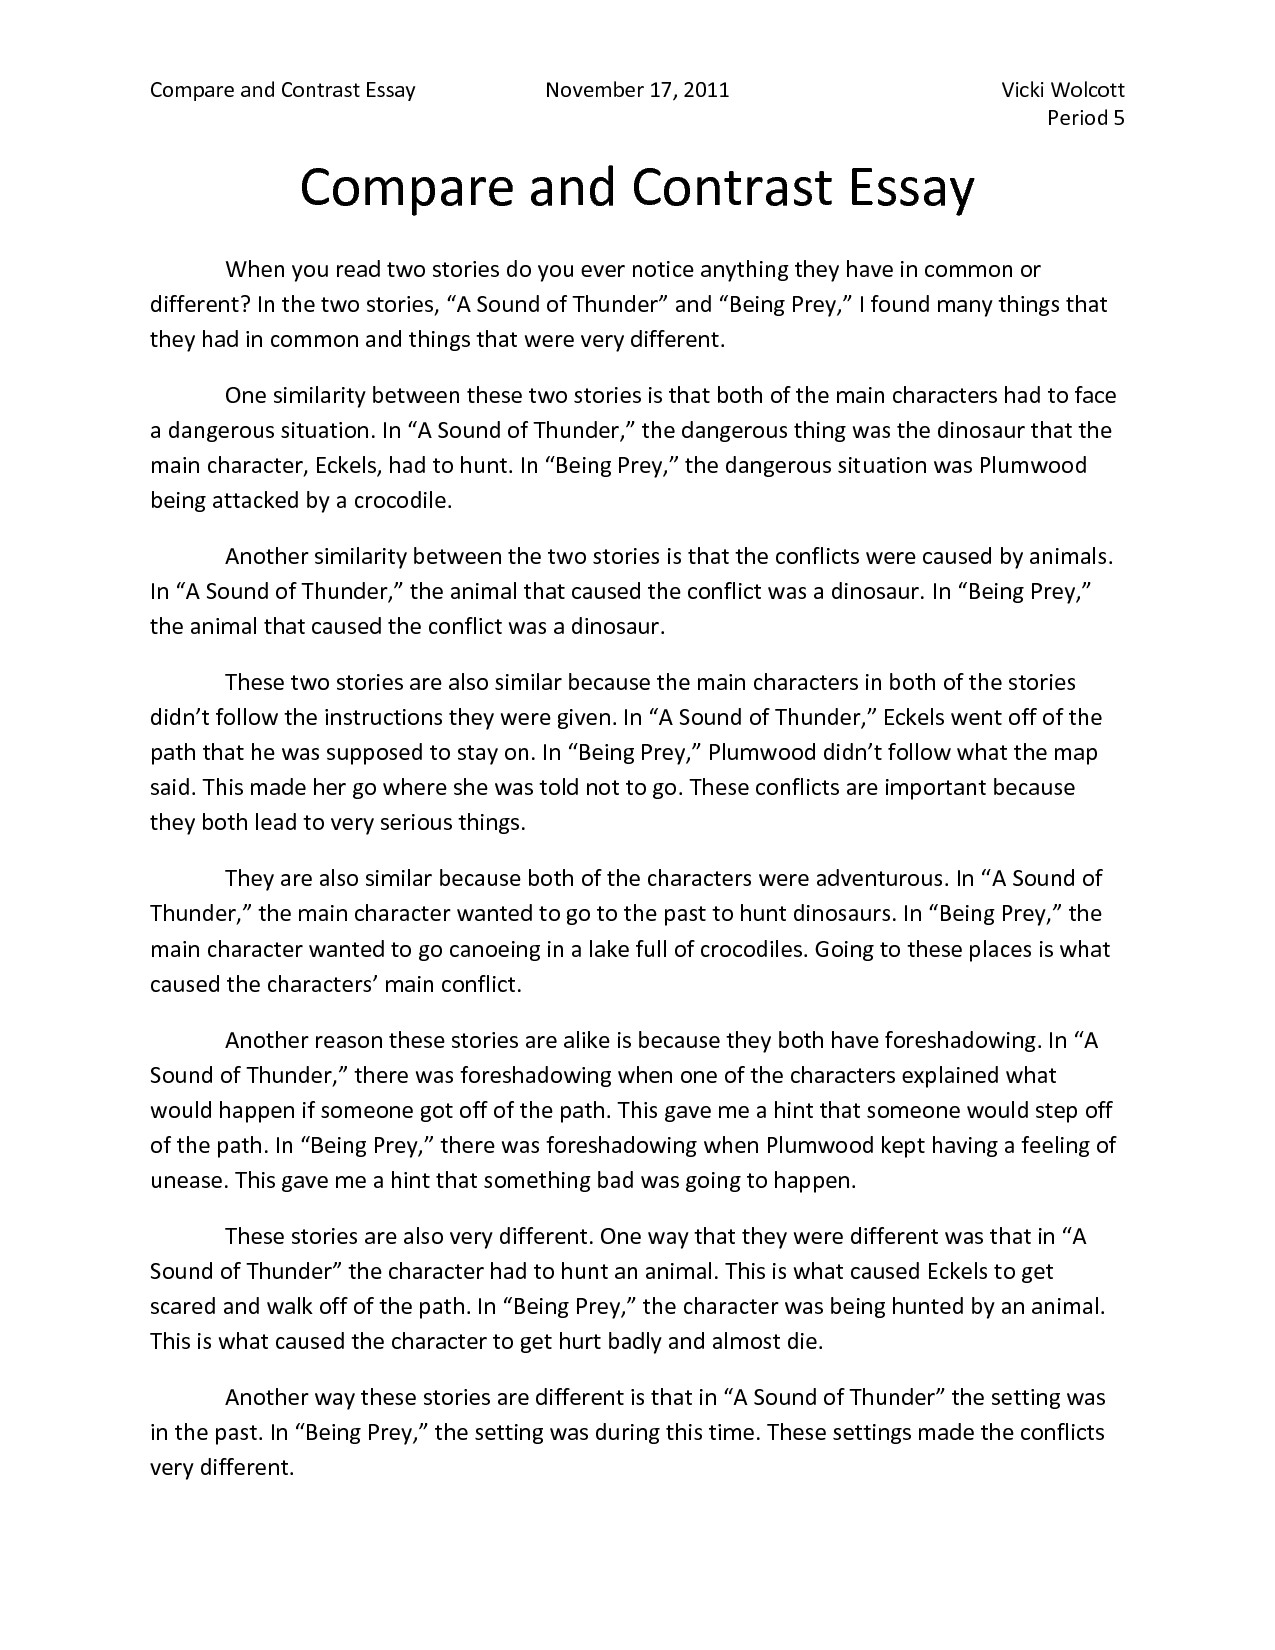 014 Comparingnd Contrasting Essay Example Satire Examples Of Comparison Contrast Essays Com How To Write Fascinating A On Obesity Outline Essay-example Full